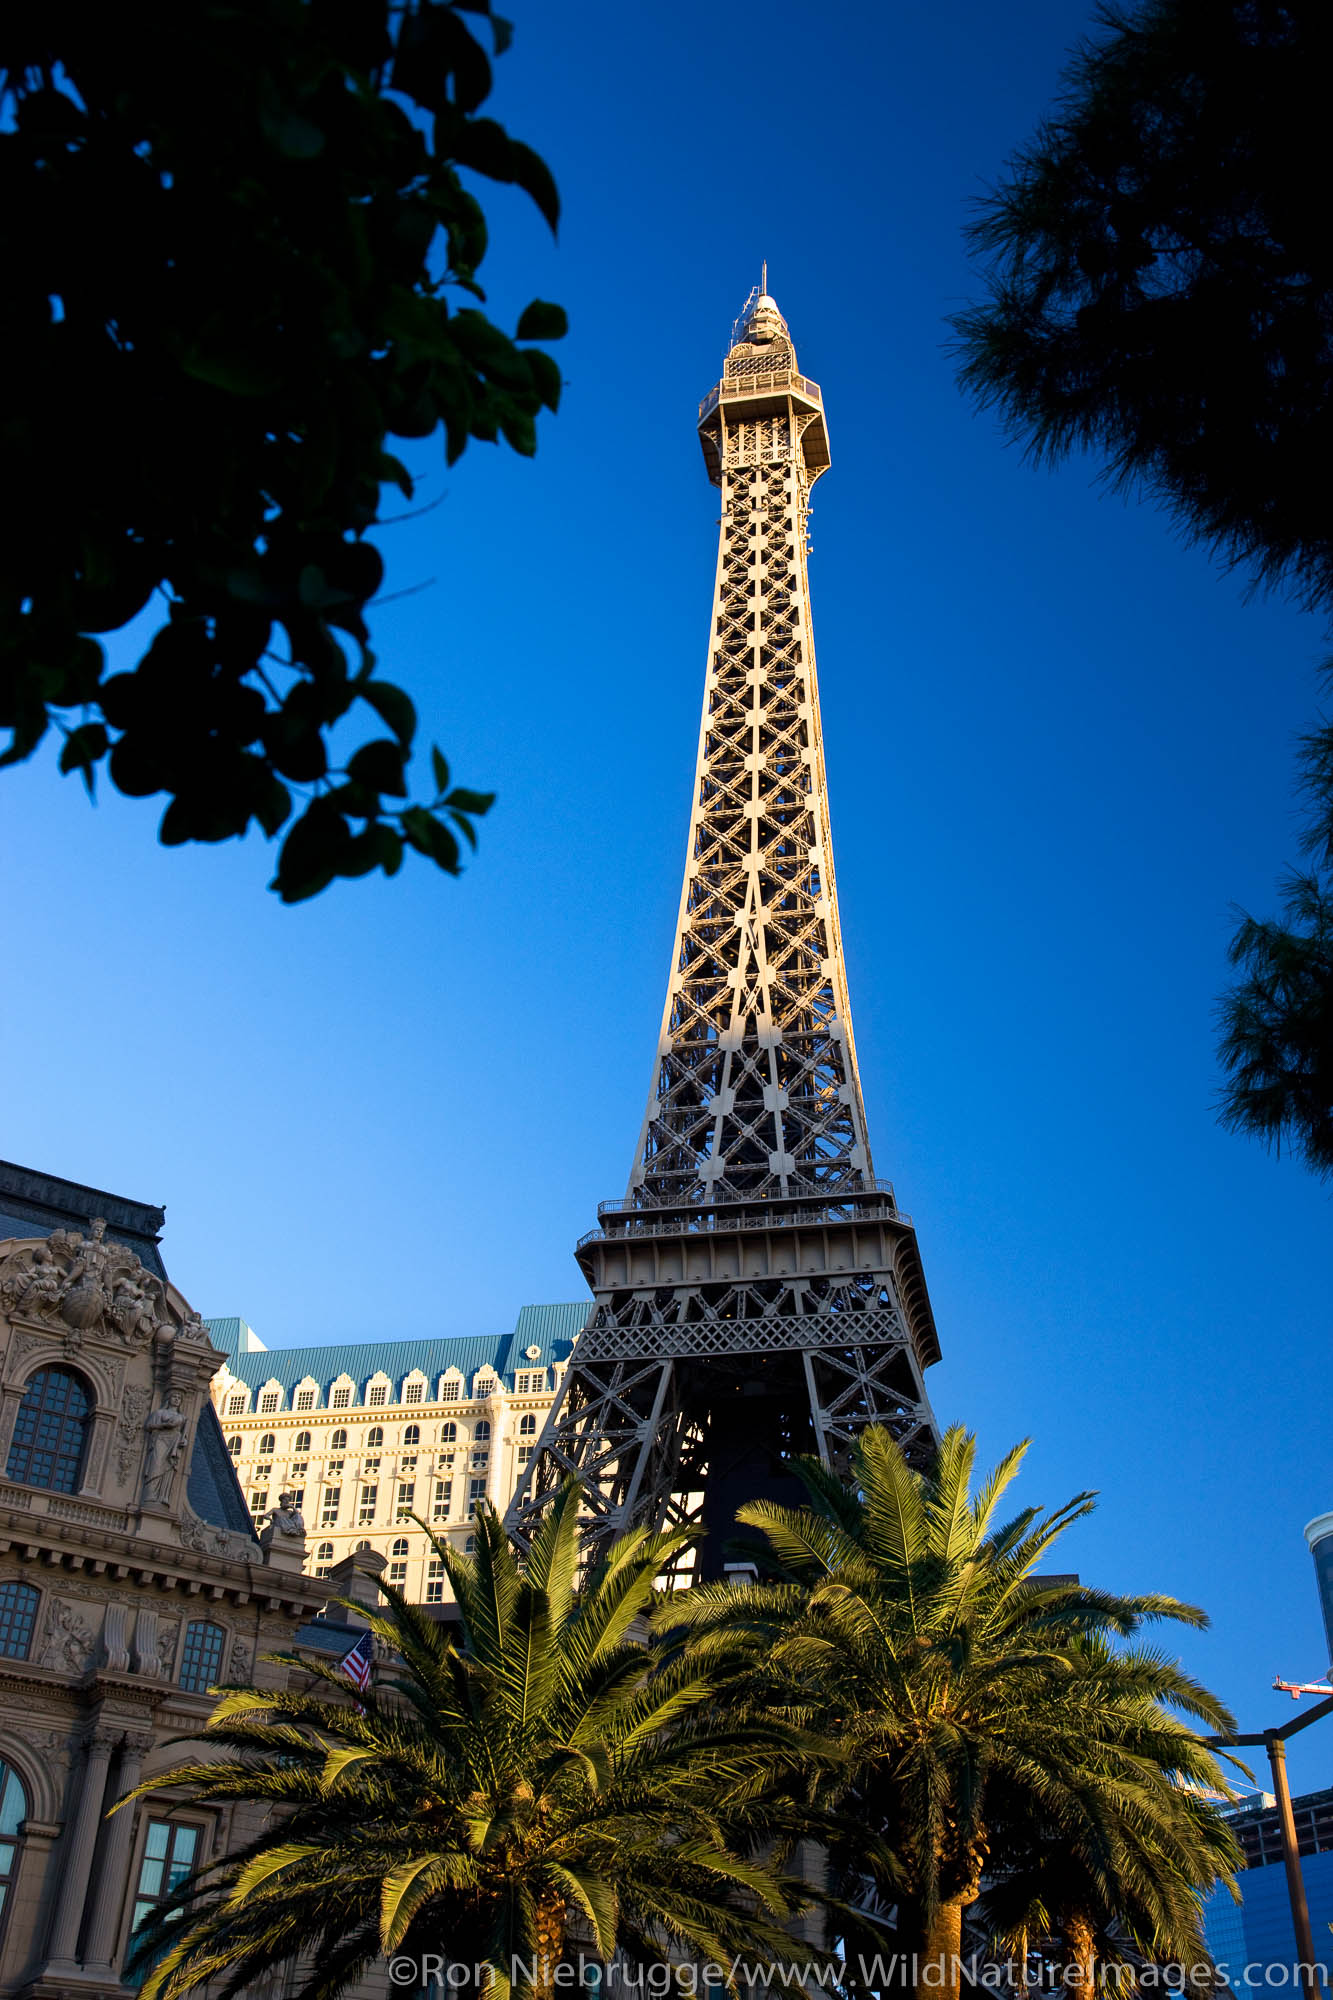 The Eiffel Tower replica at the Paris Hotel and Casino Las Vegas, Nevada.